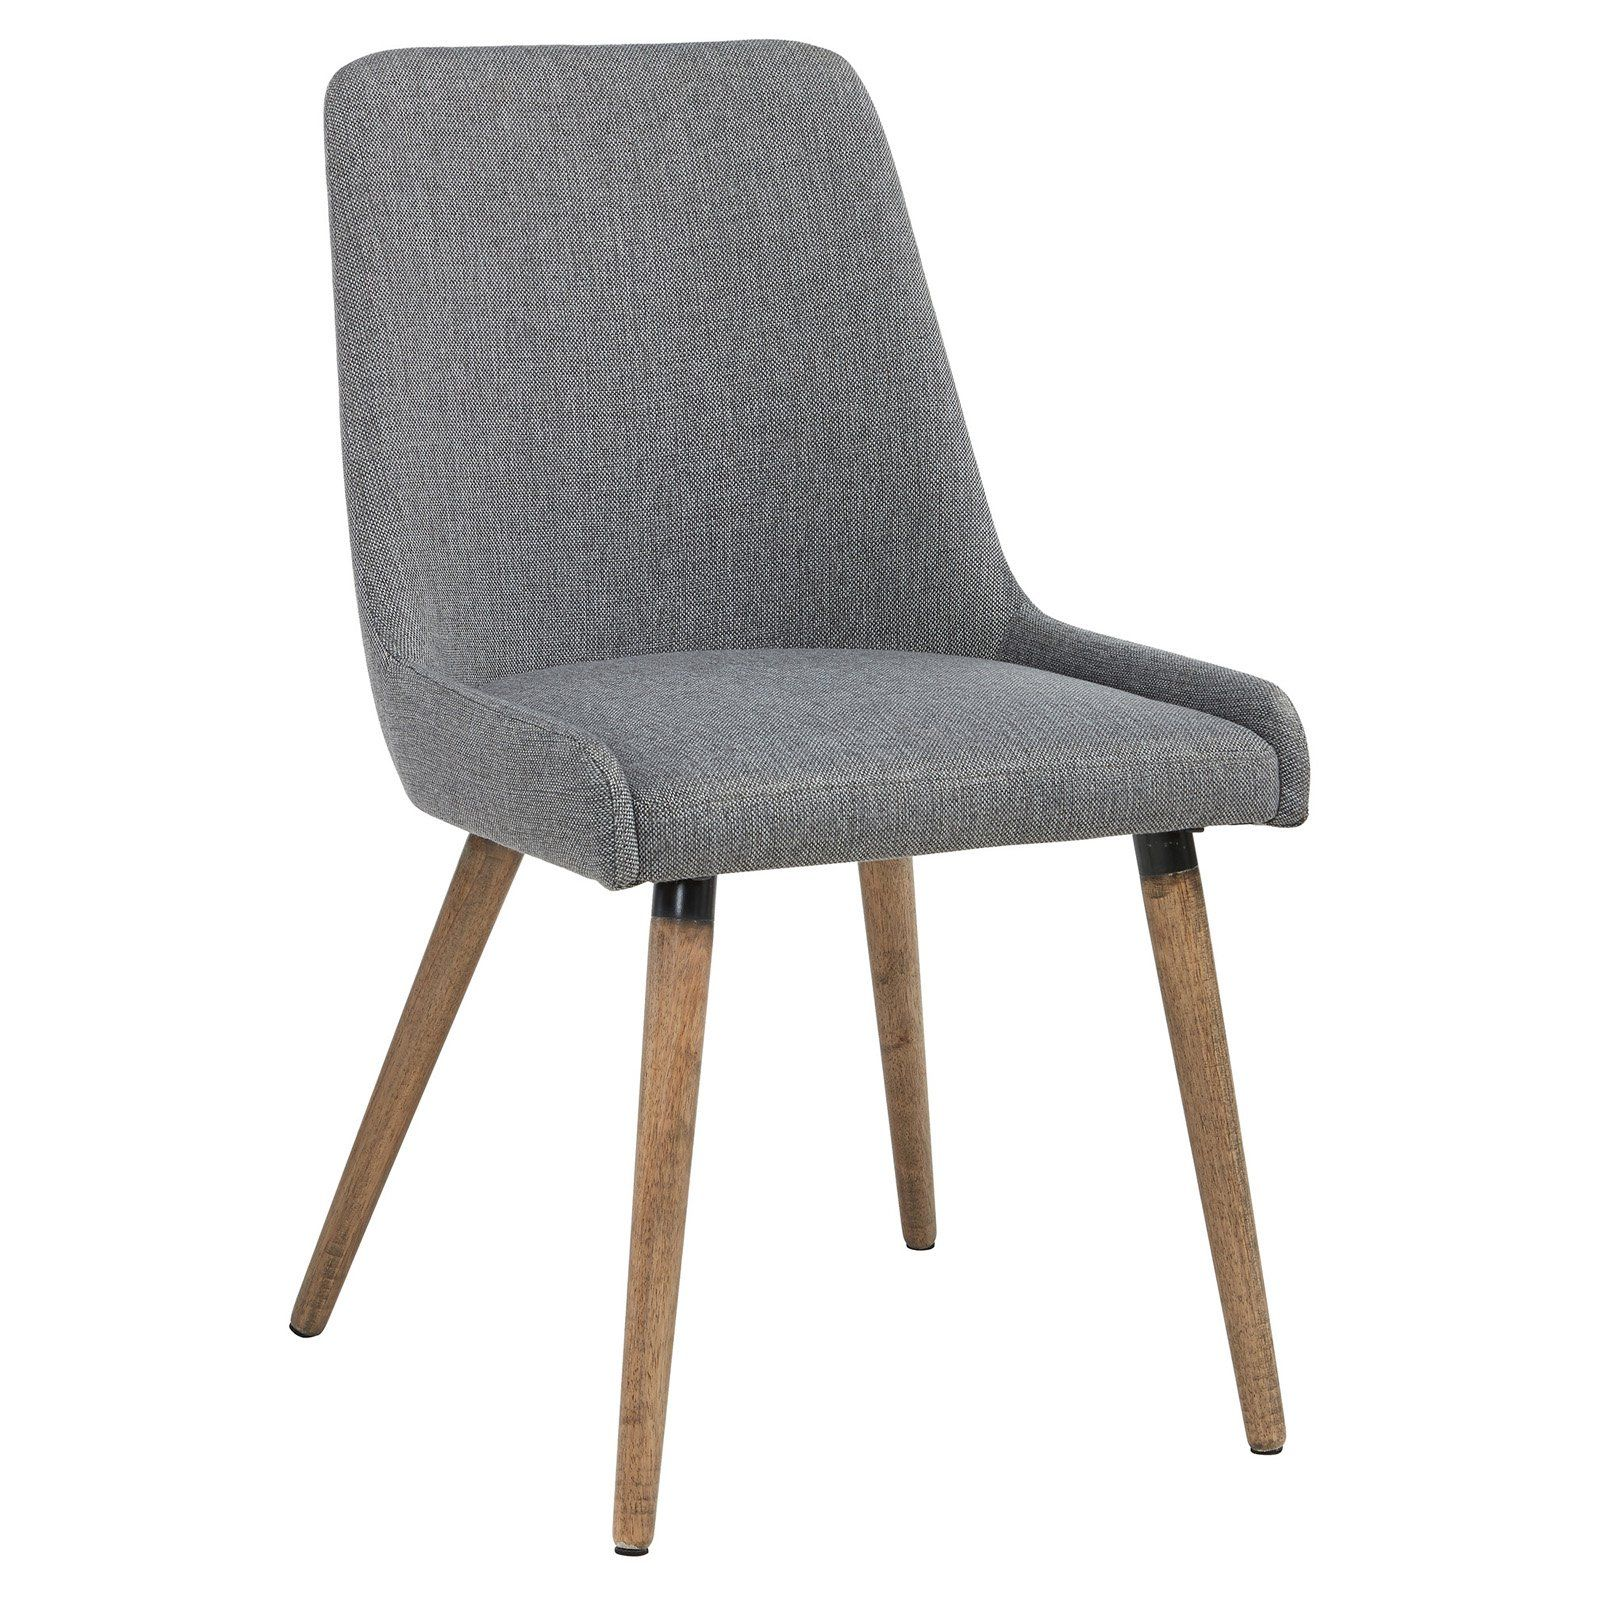 mid century modern dining side chair